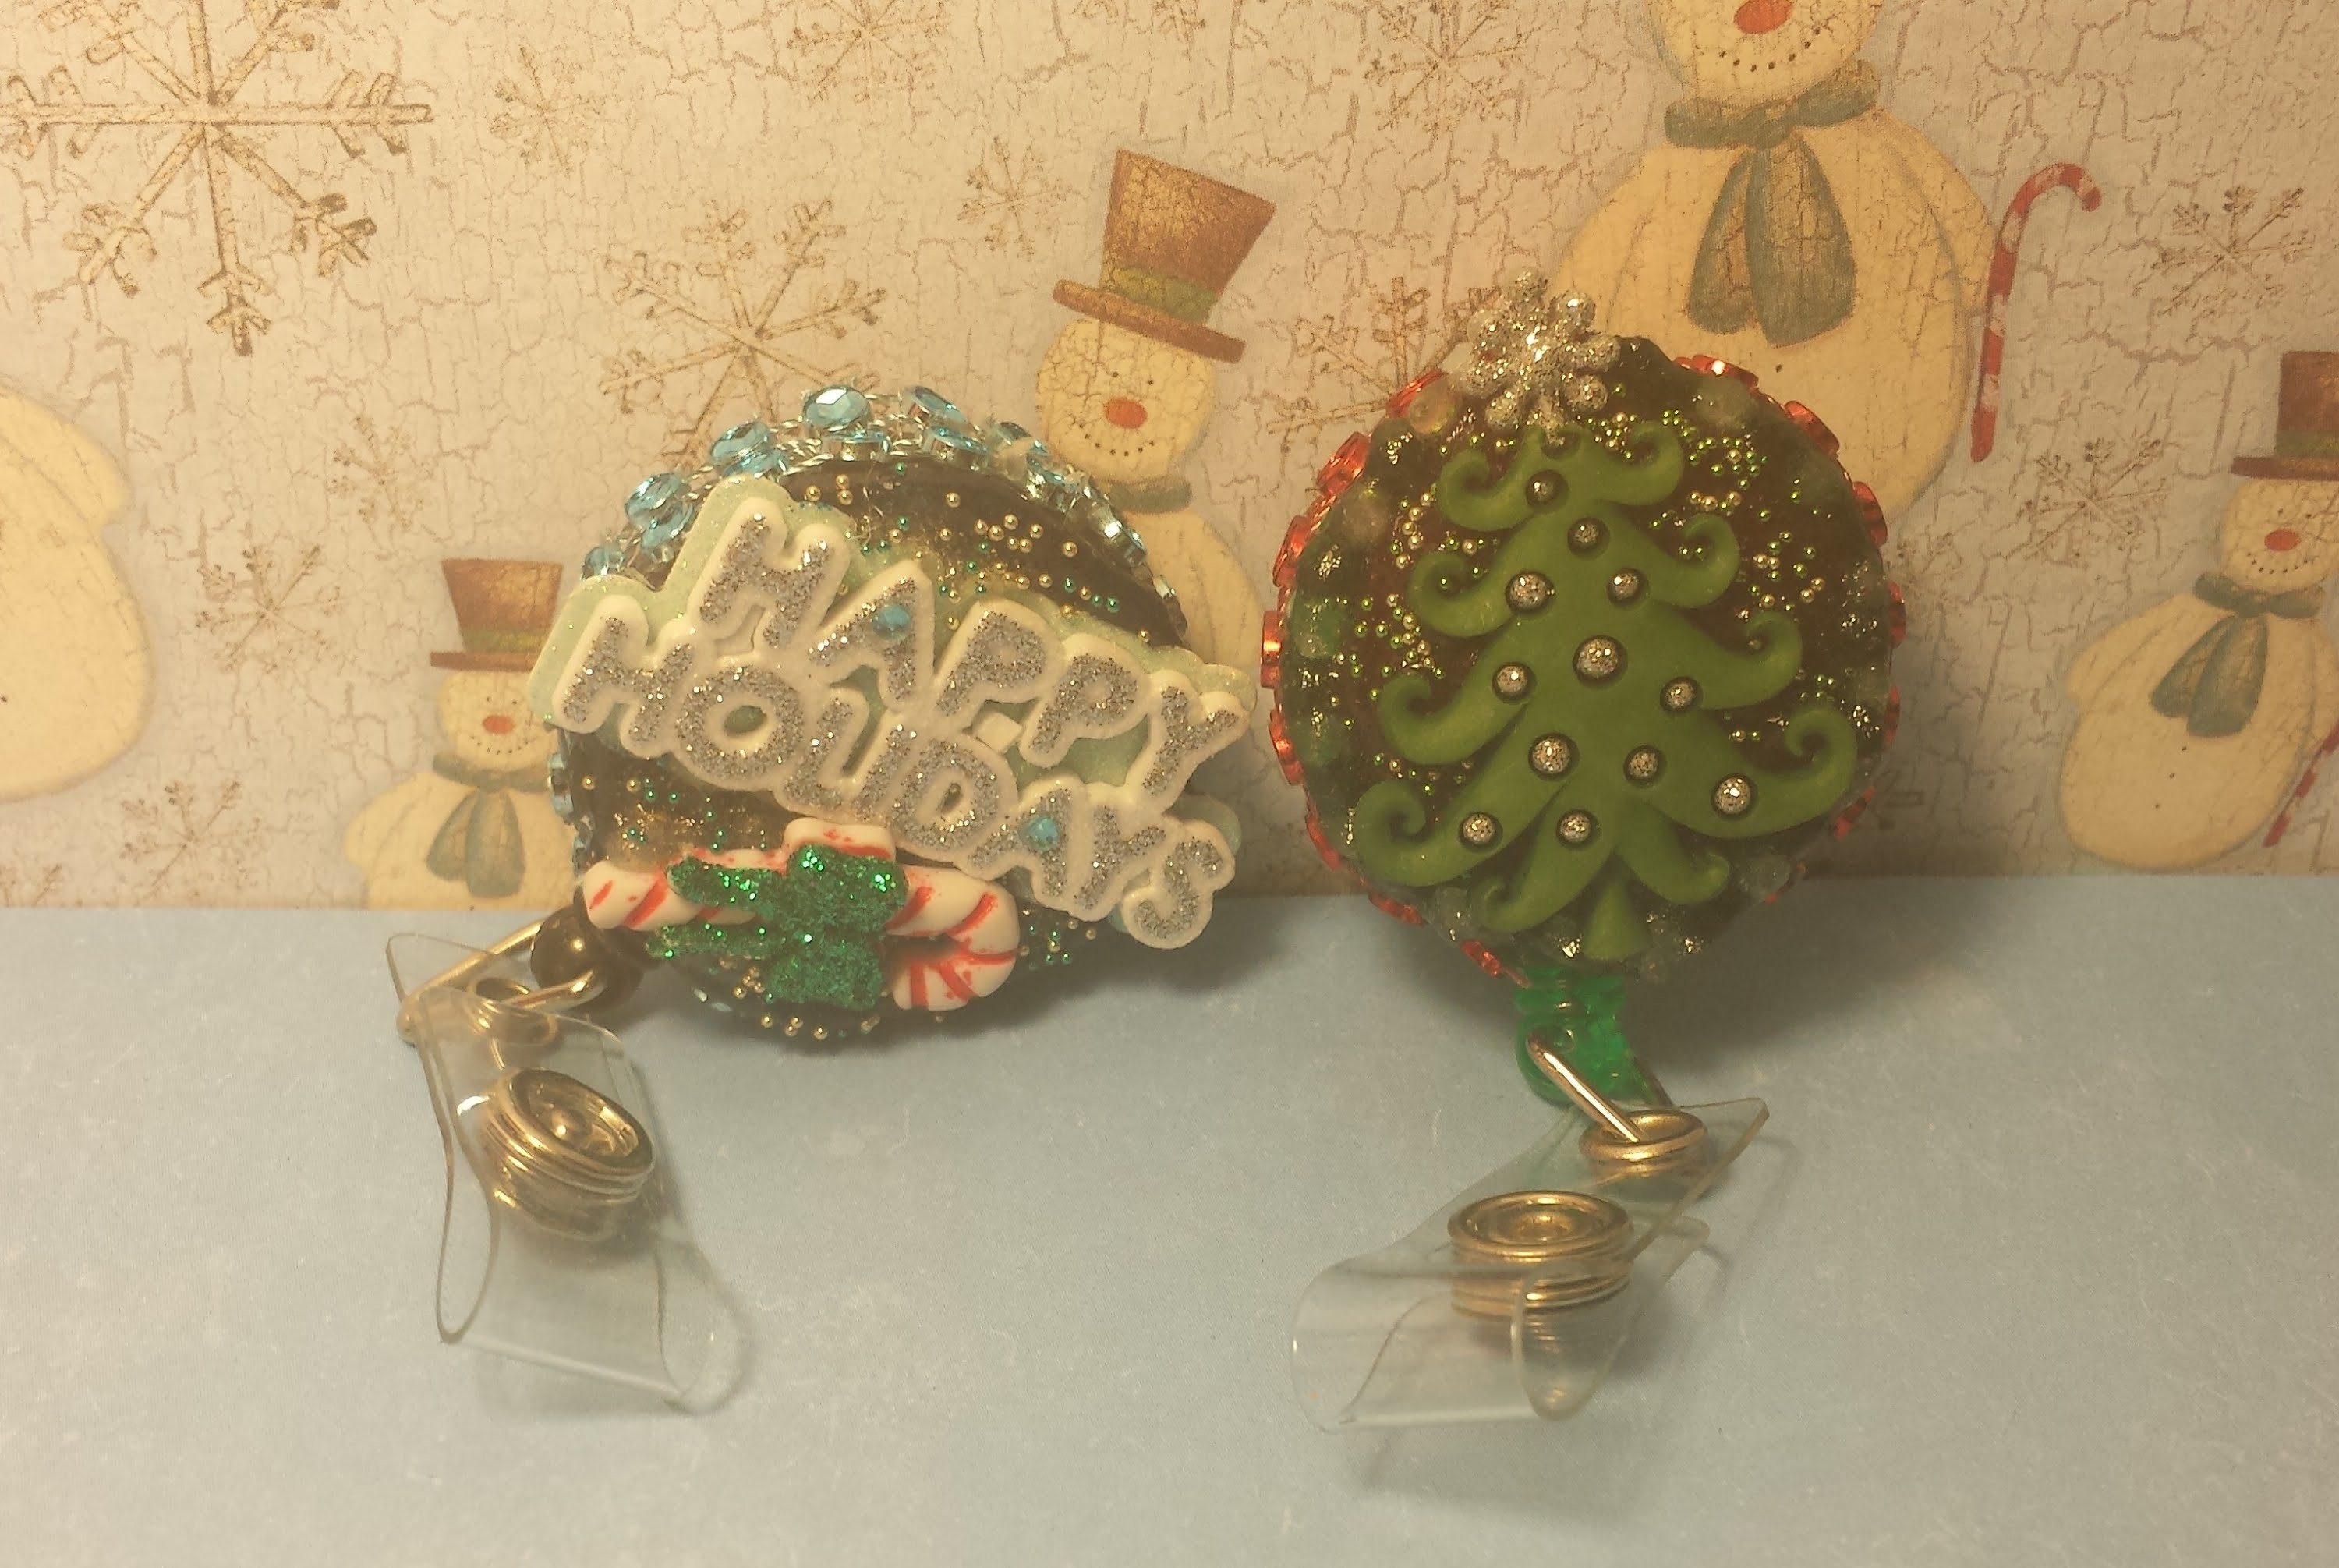 ID Badge Holder Tutorial #7: Christmas Tree